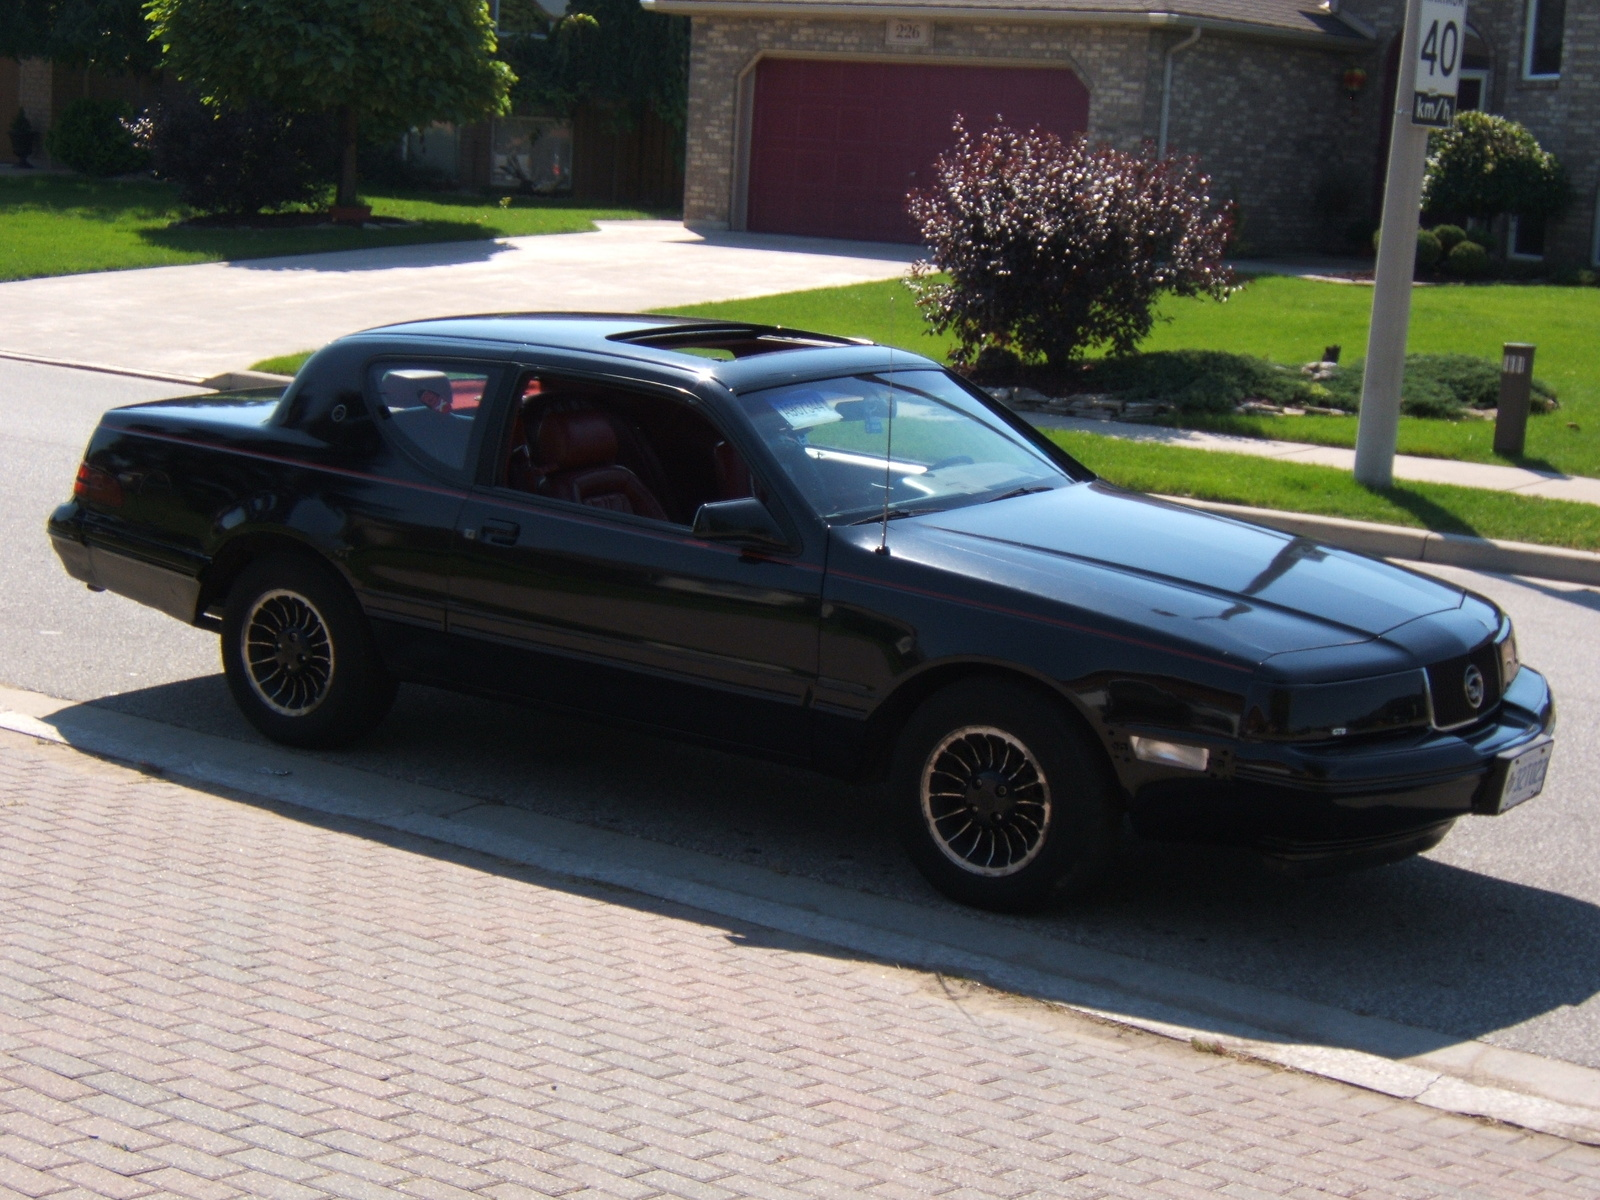 Picture of 1988 Mercury Cougar